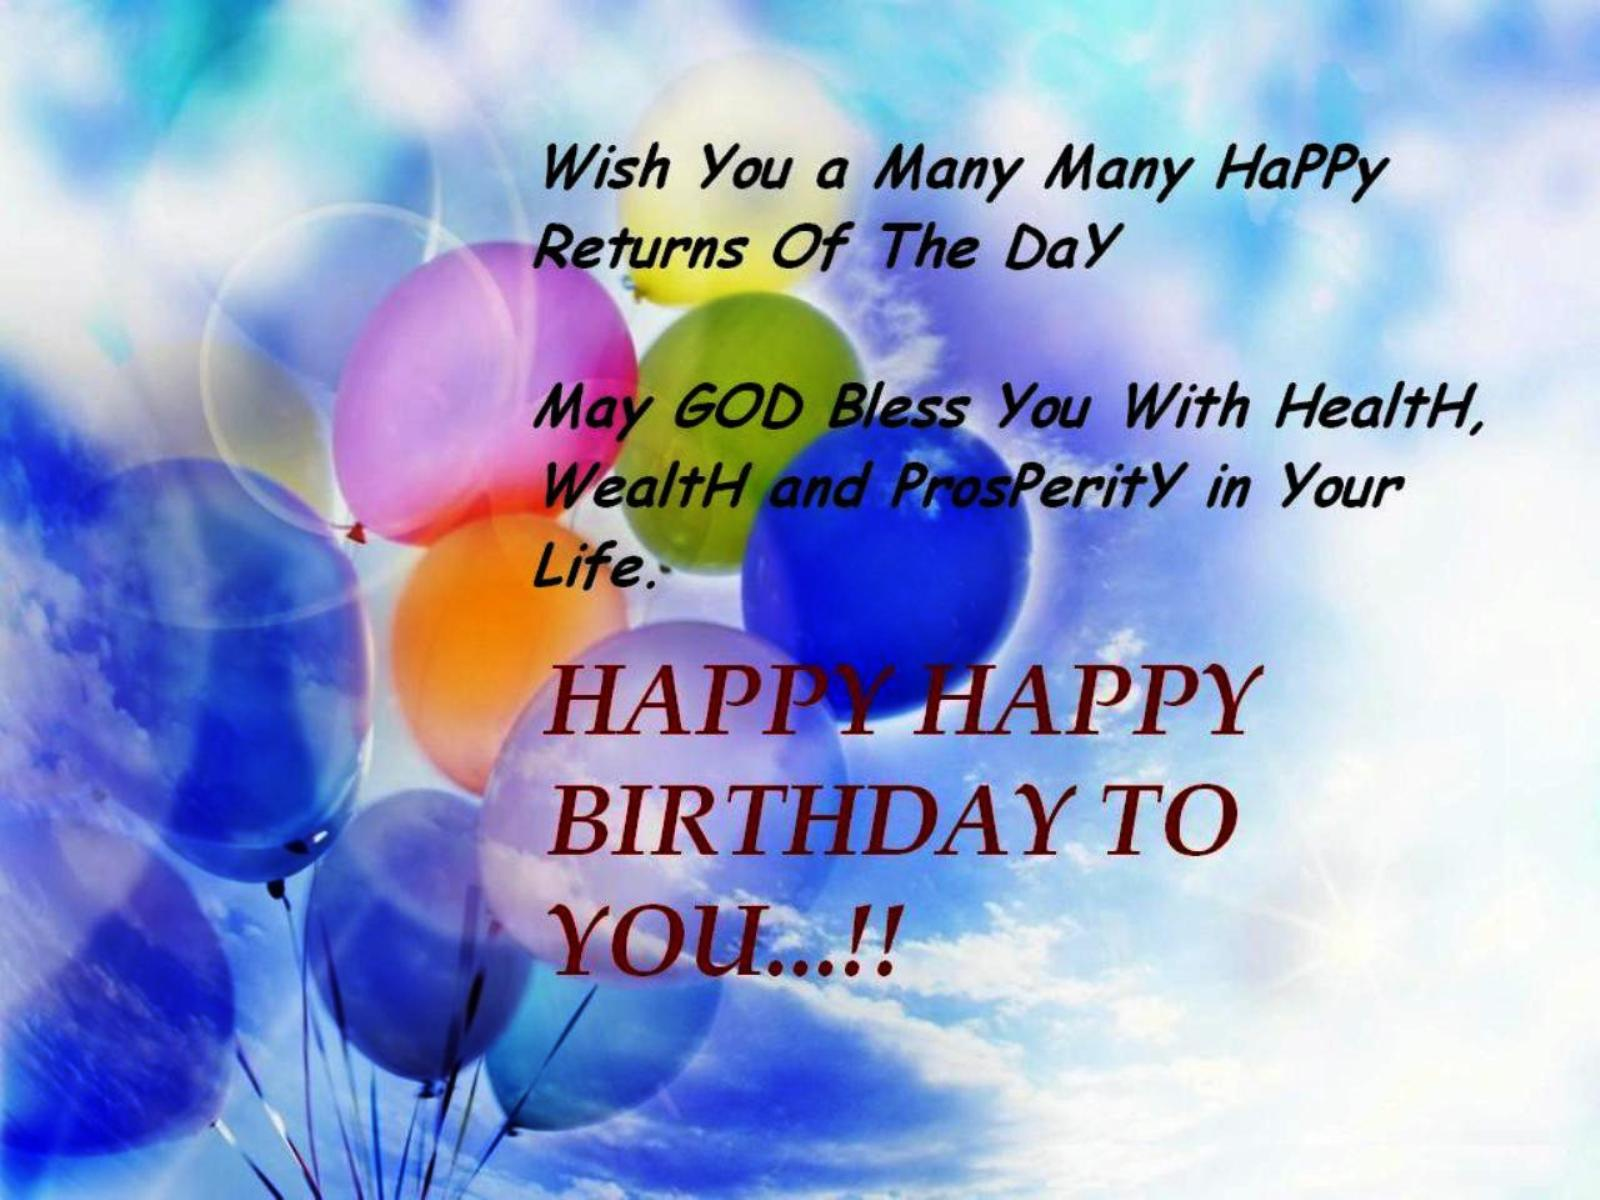 birthday wishes wallpapers with quotes ; 02588c5559c59c4bce824bceb26b66f2